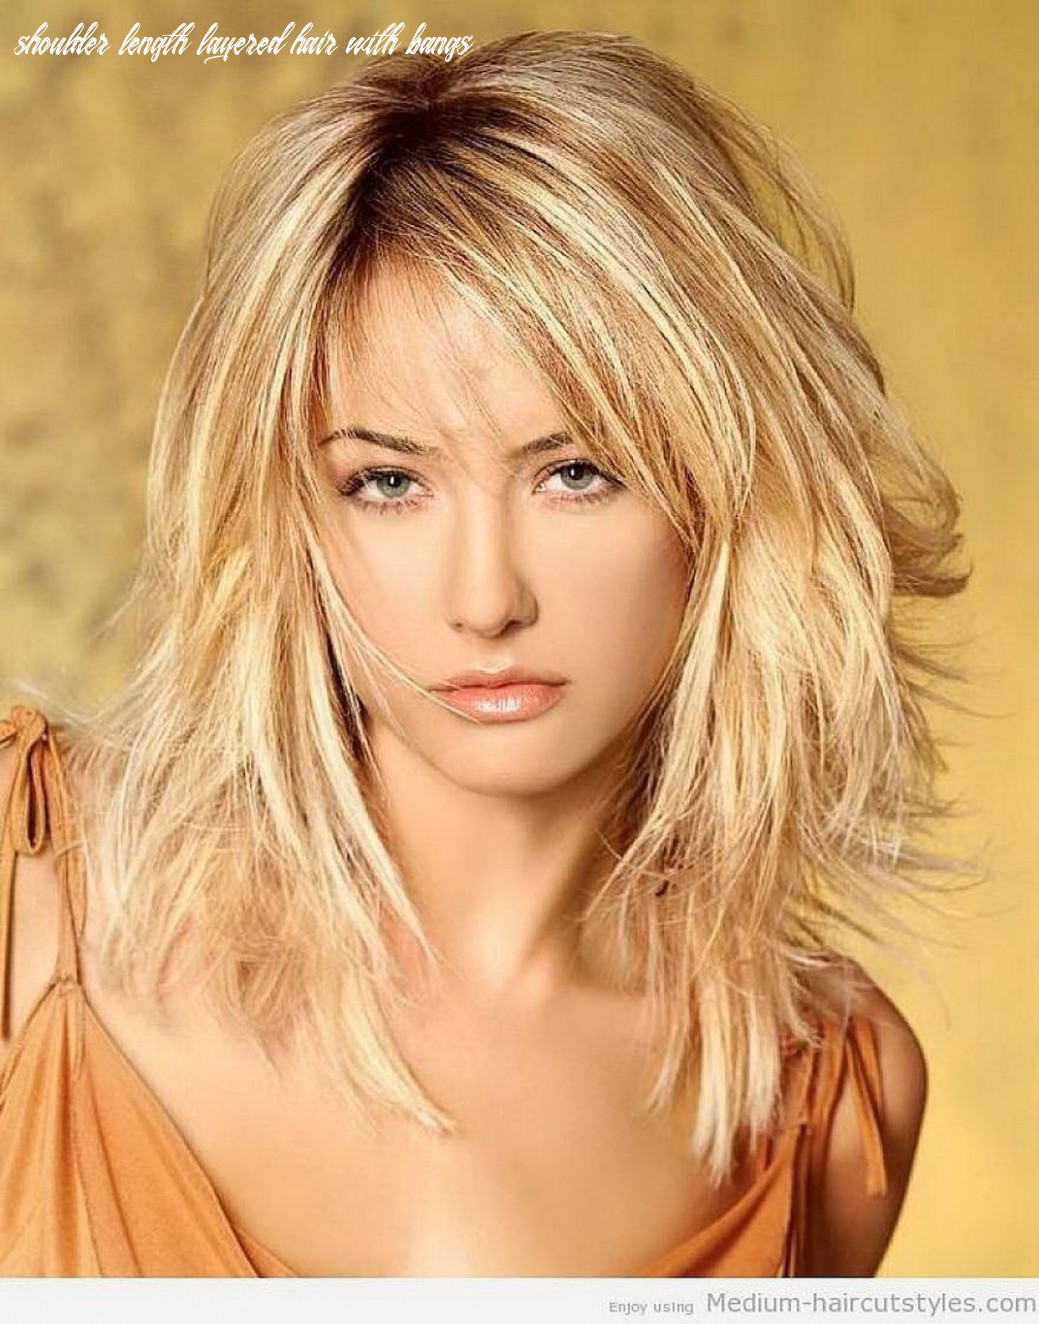 Pin on hairstyles shoulder length layered hair with bangs